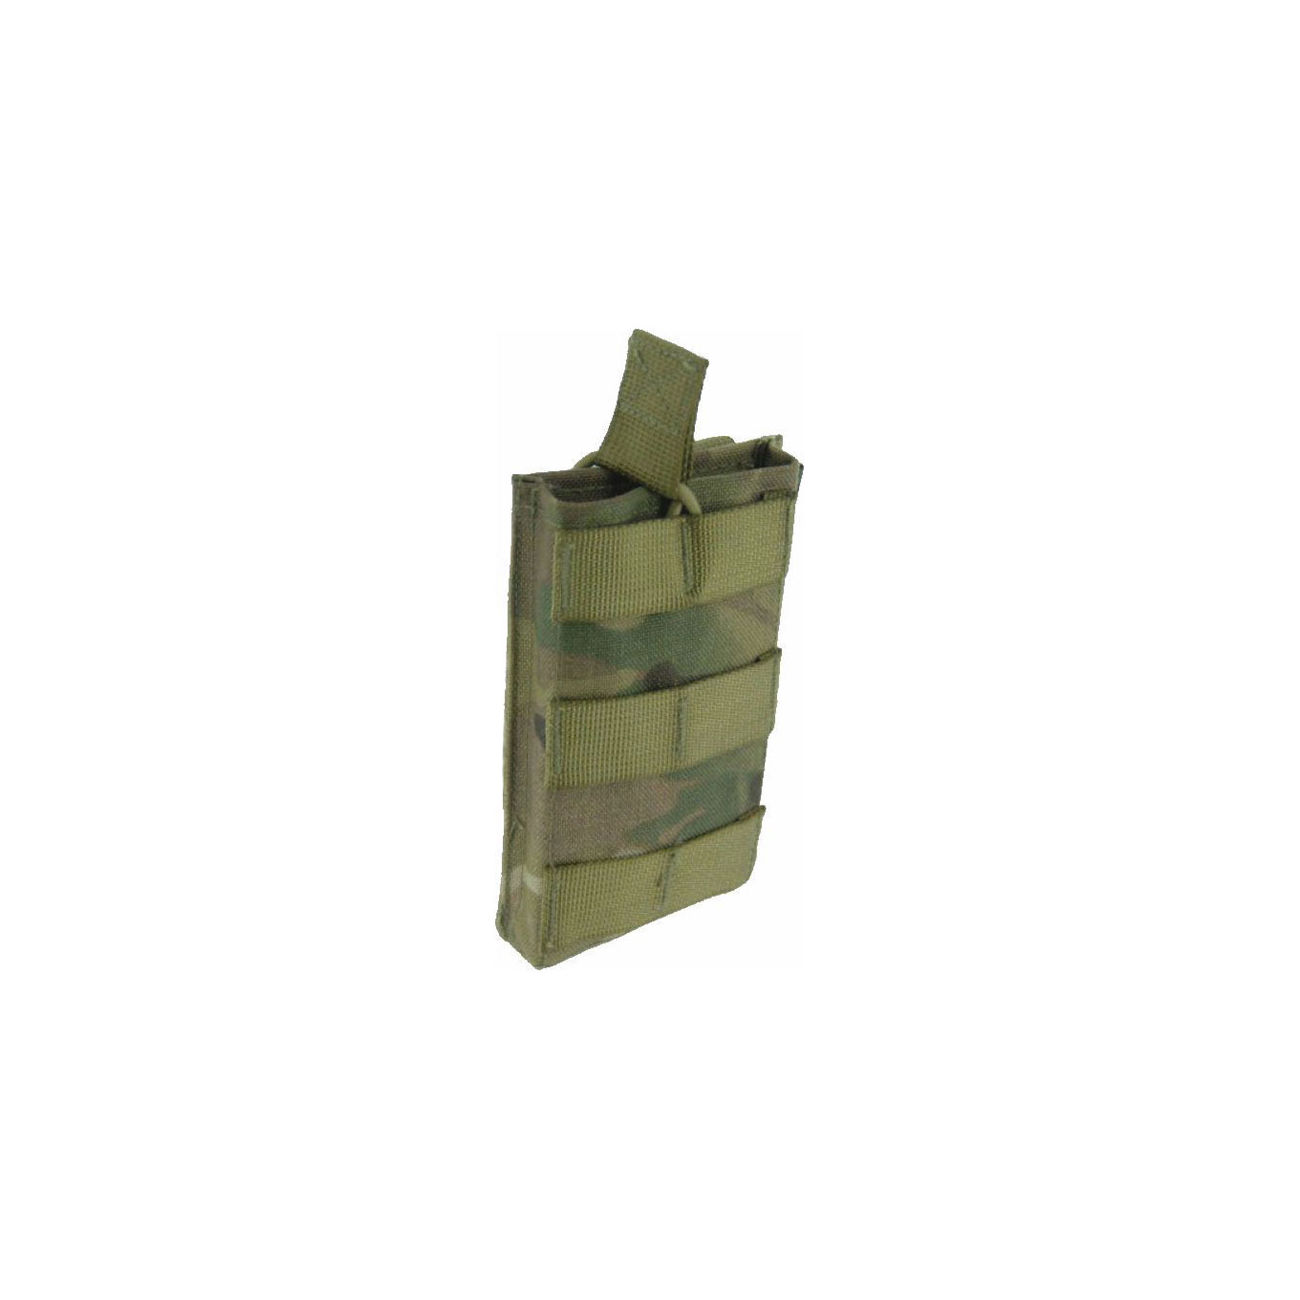 Highlander Pro-Force Magazintasche Molle single offen M4 M16 multicam 0